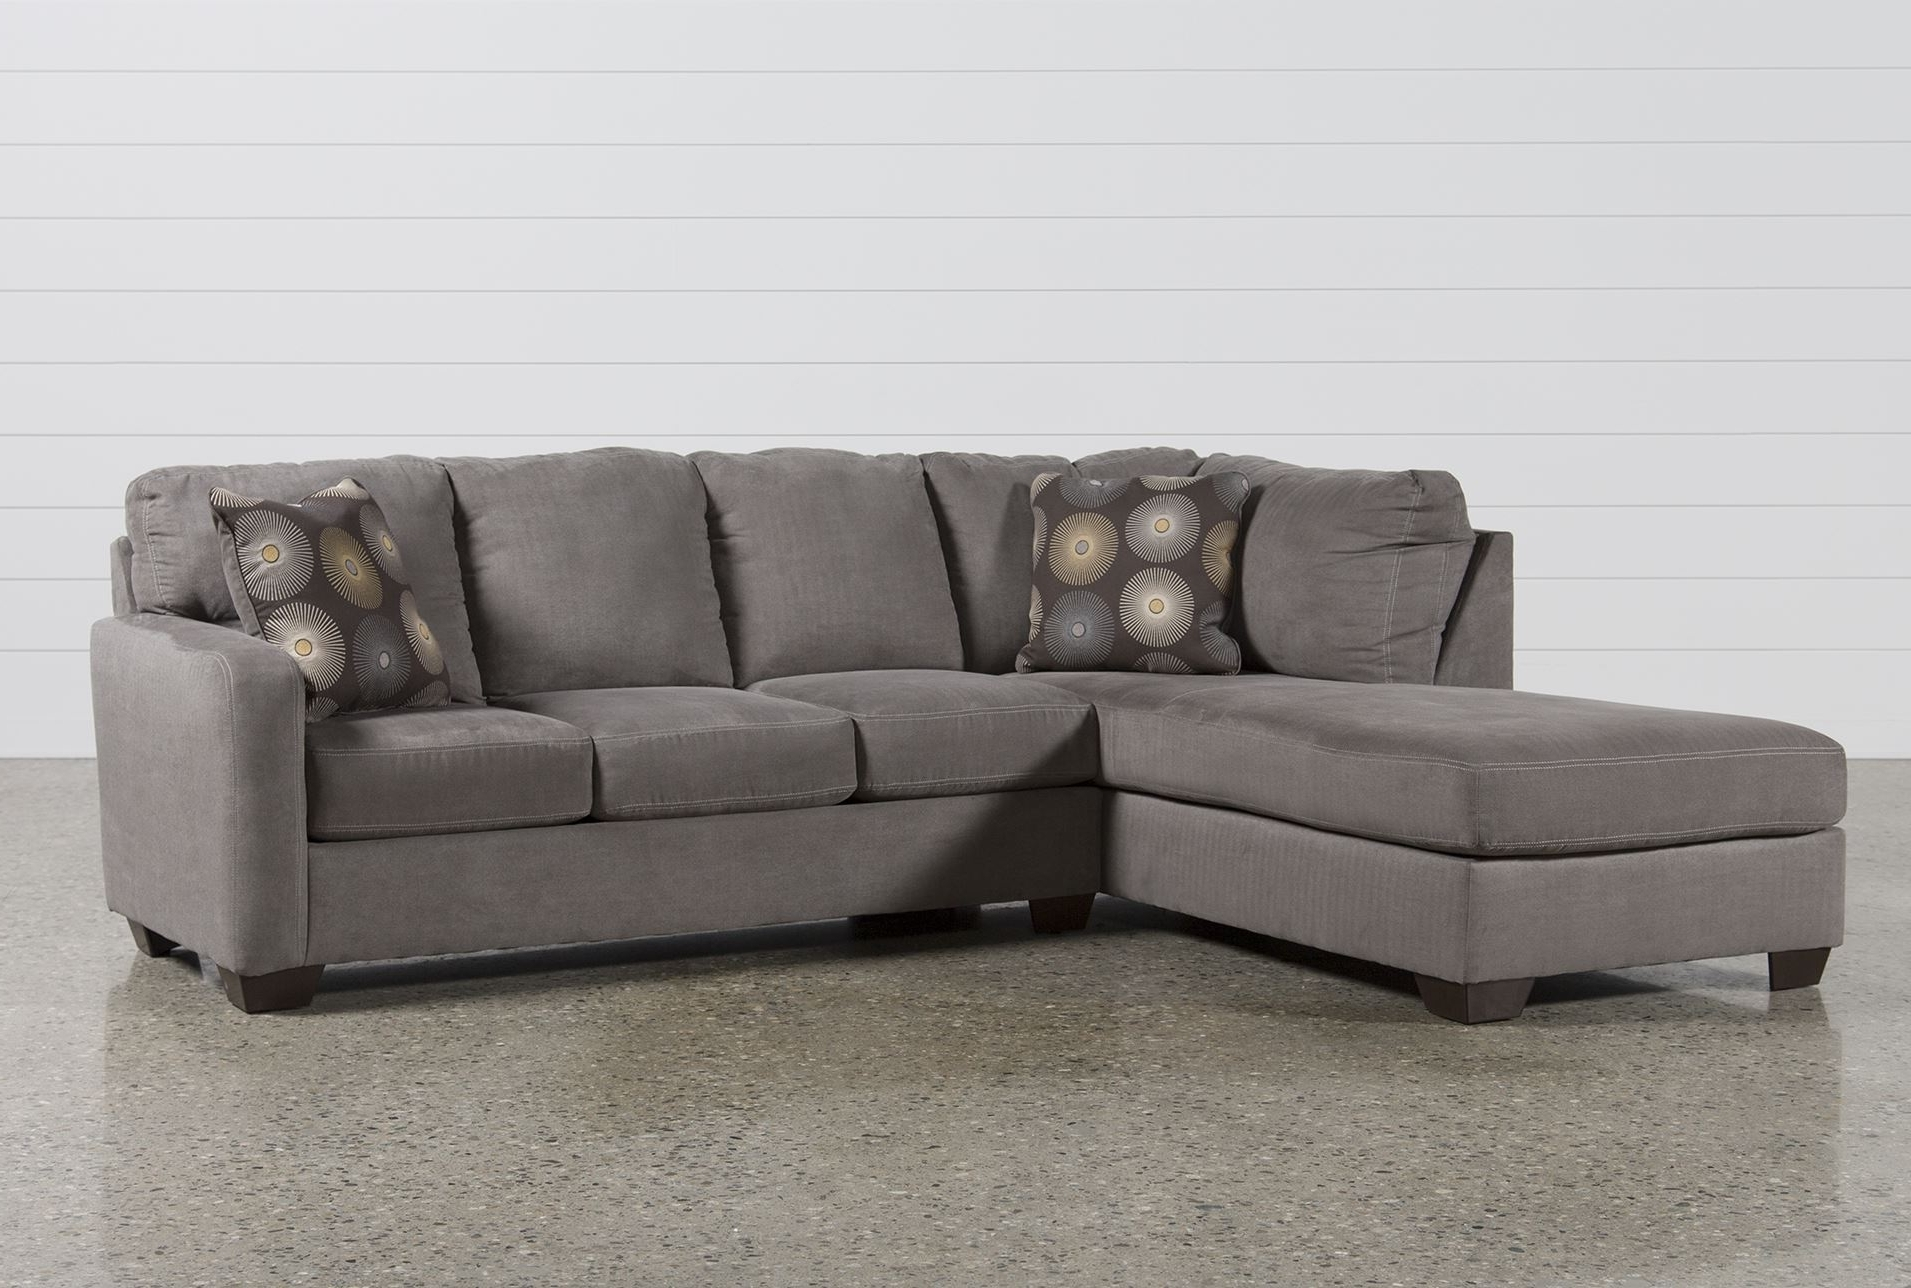 Recent Furniture: Microfiber Chaise Lounge For Comfortable Sofa Design With Gray Chaise Sofas (View 10 of 15)